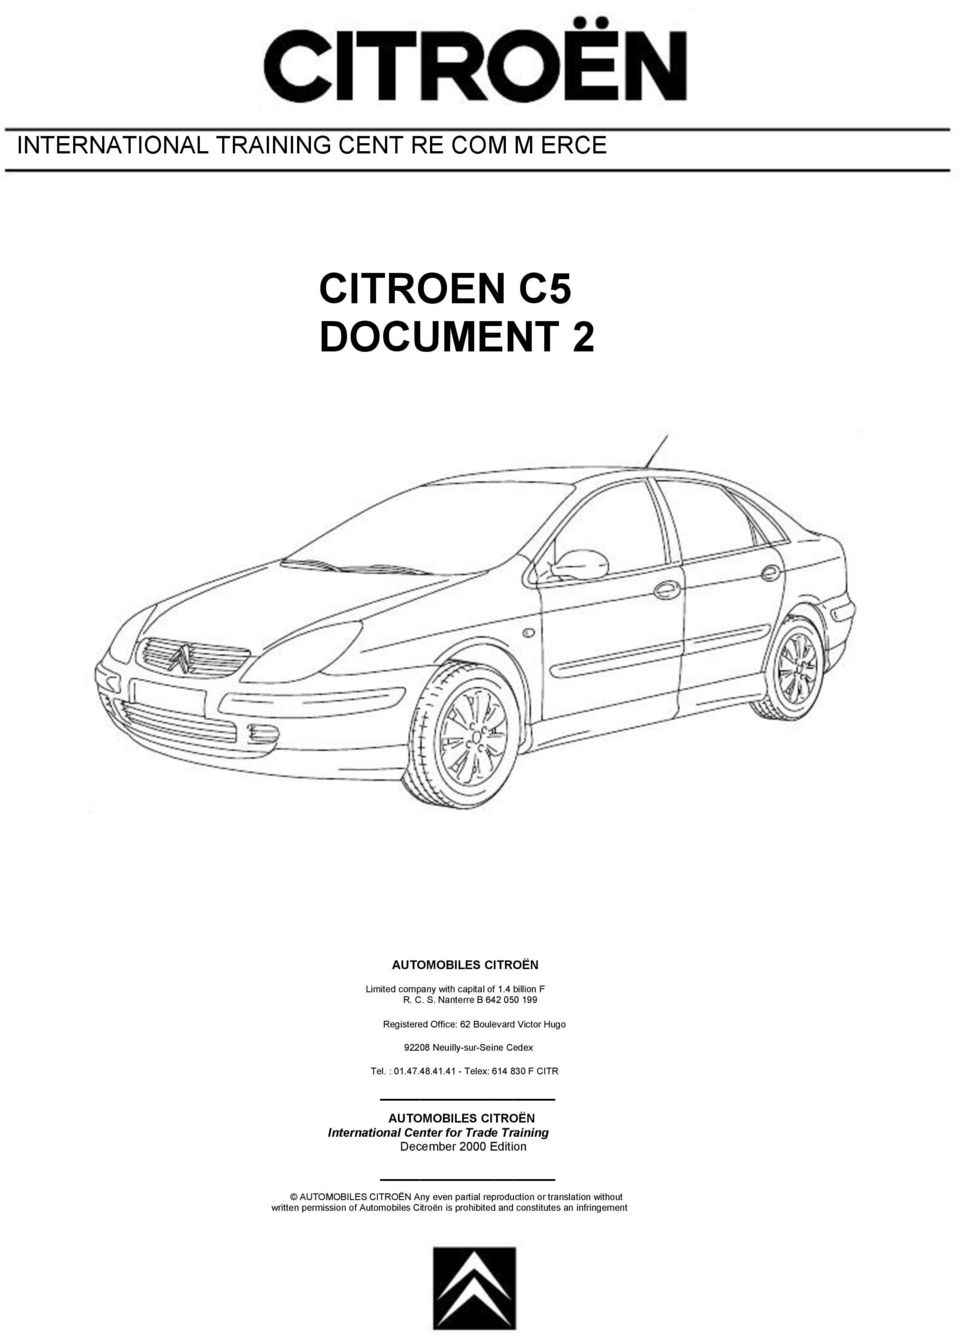 Citroen Ax Wiring Diagram Pdf Electrical Diagrams Saxo Data U2022 Symbols